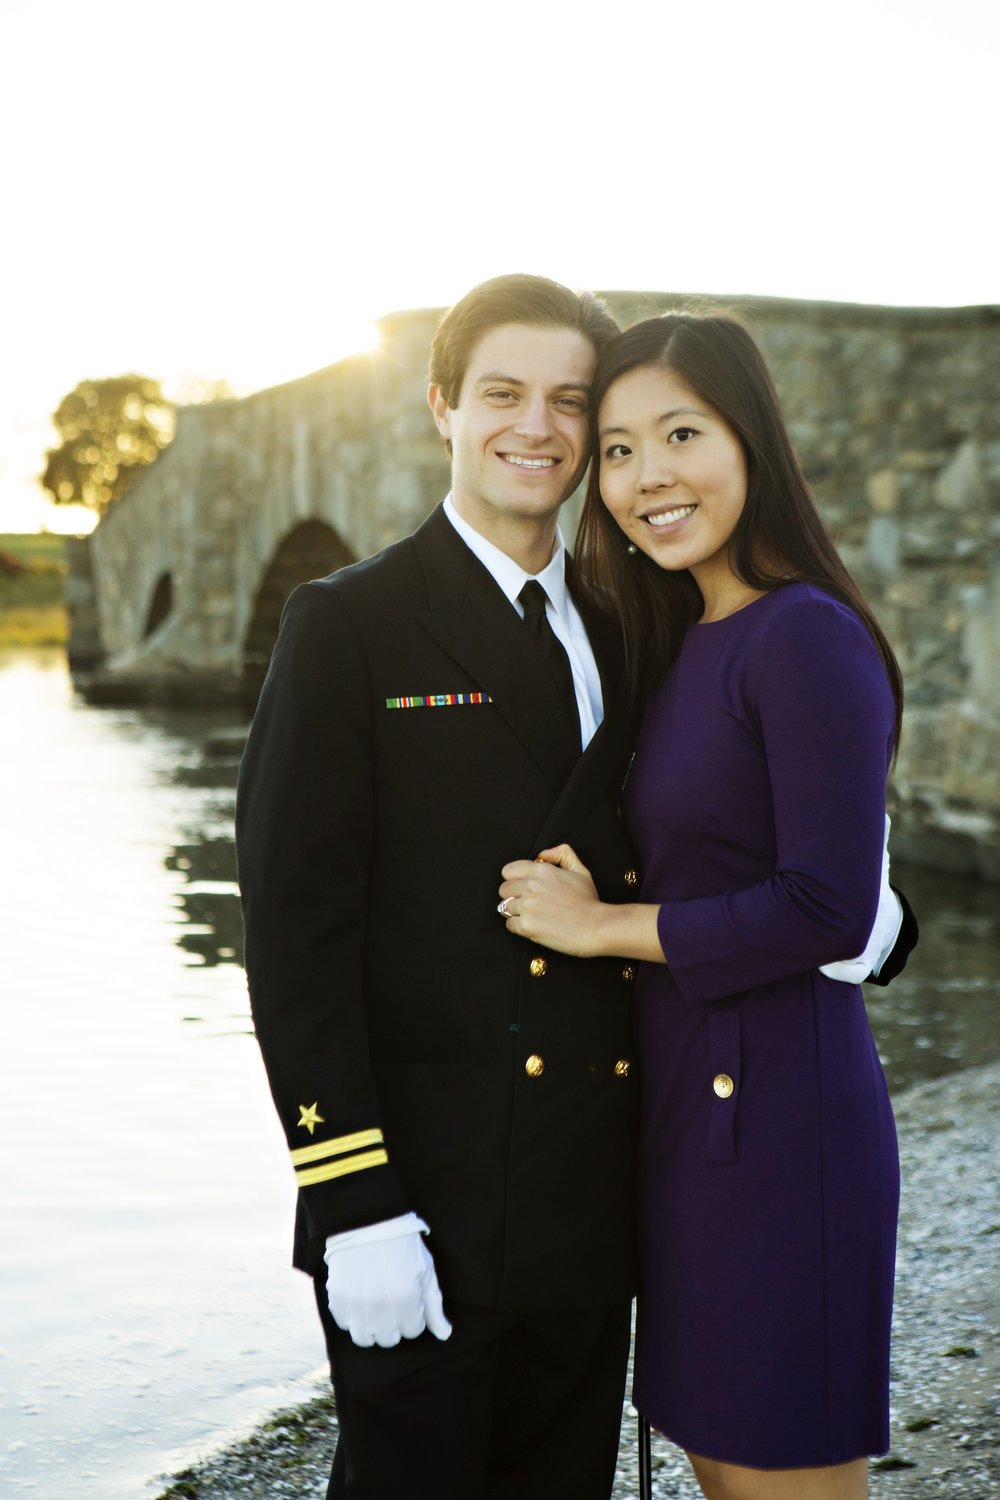 Nathan is married to Roanna. They withstood five years of long-distance during Nathan's military service before marrying.